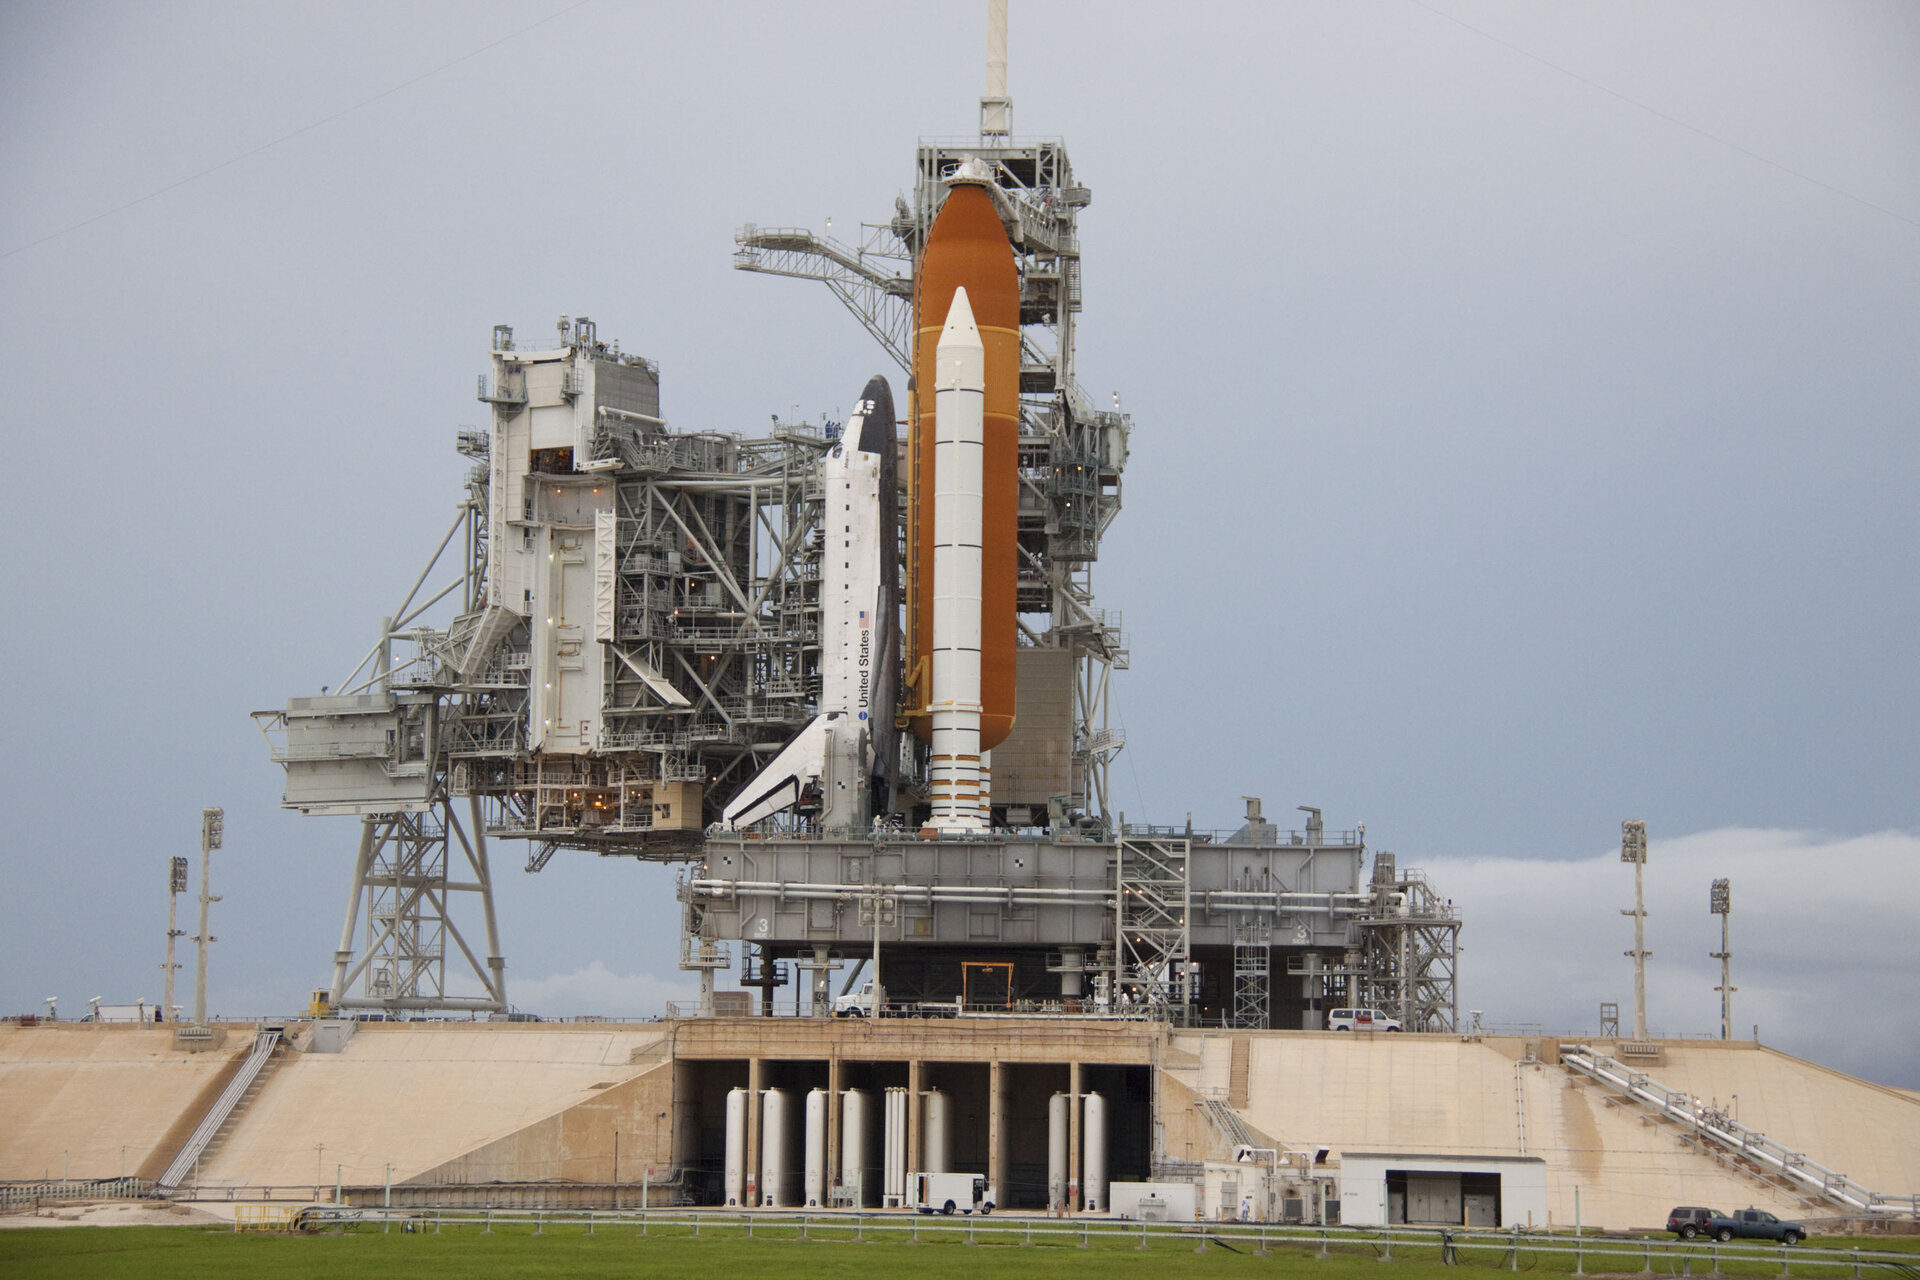 Space shuttle Atlantis on Launch Pad 39A